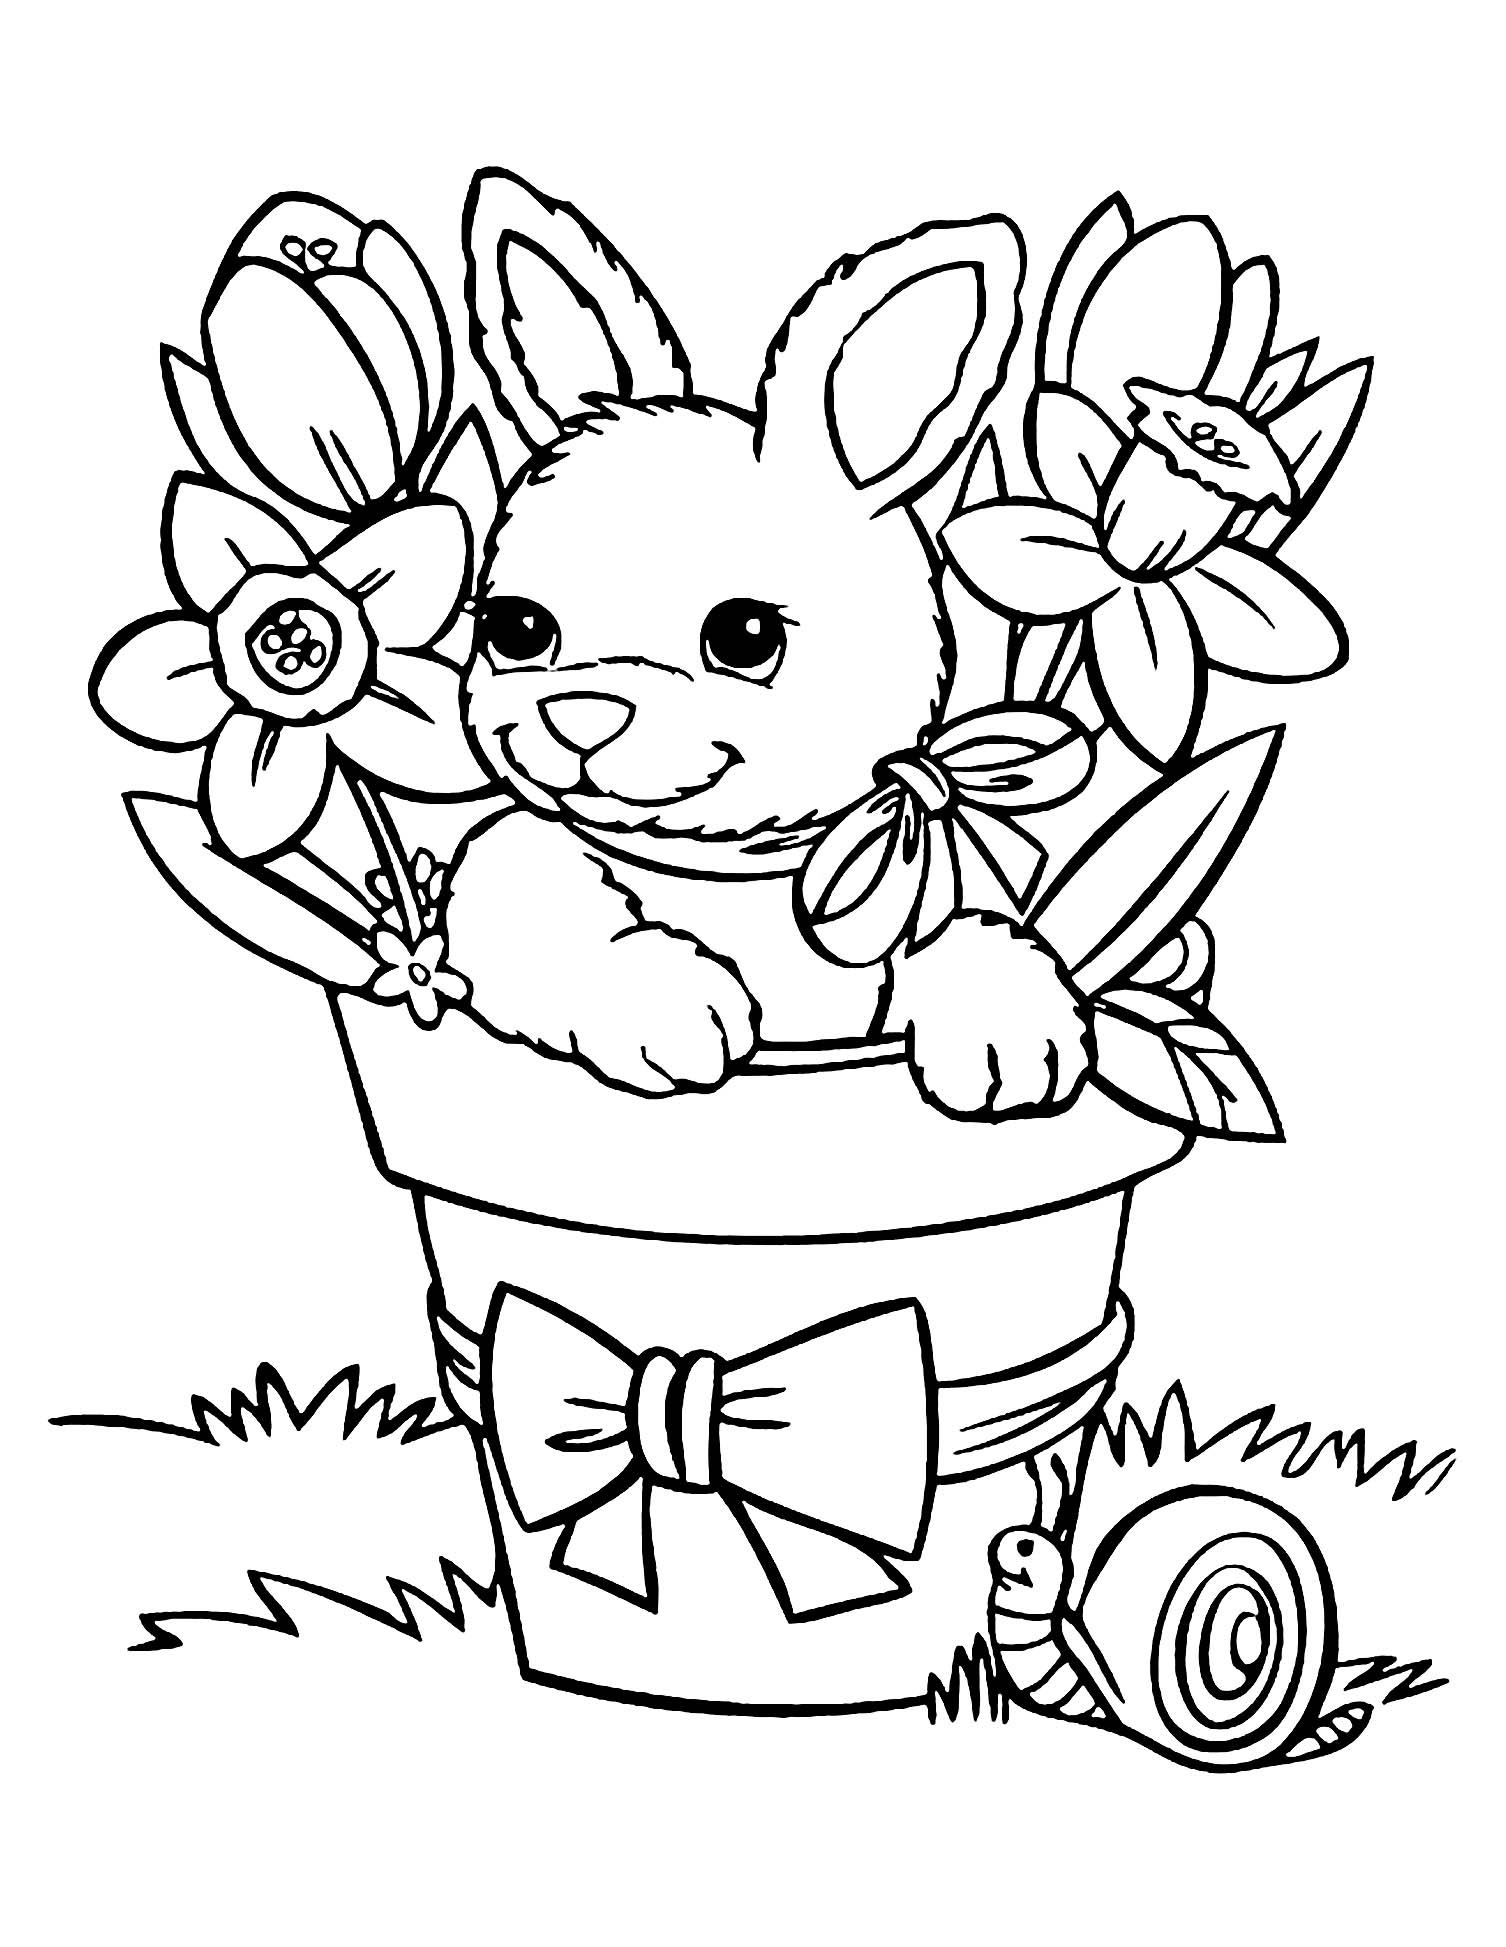 rabbit coloring page rabbit free to color for kids rabbit kids coloring pages rabbit page coloring